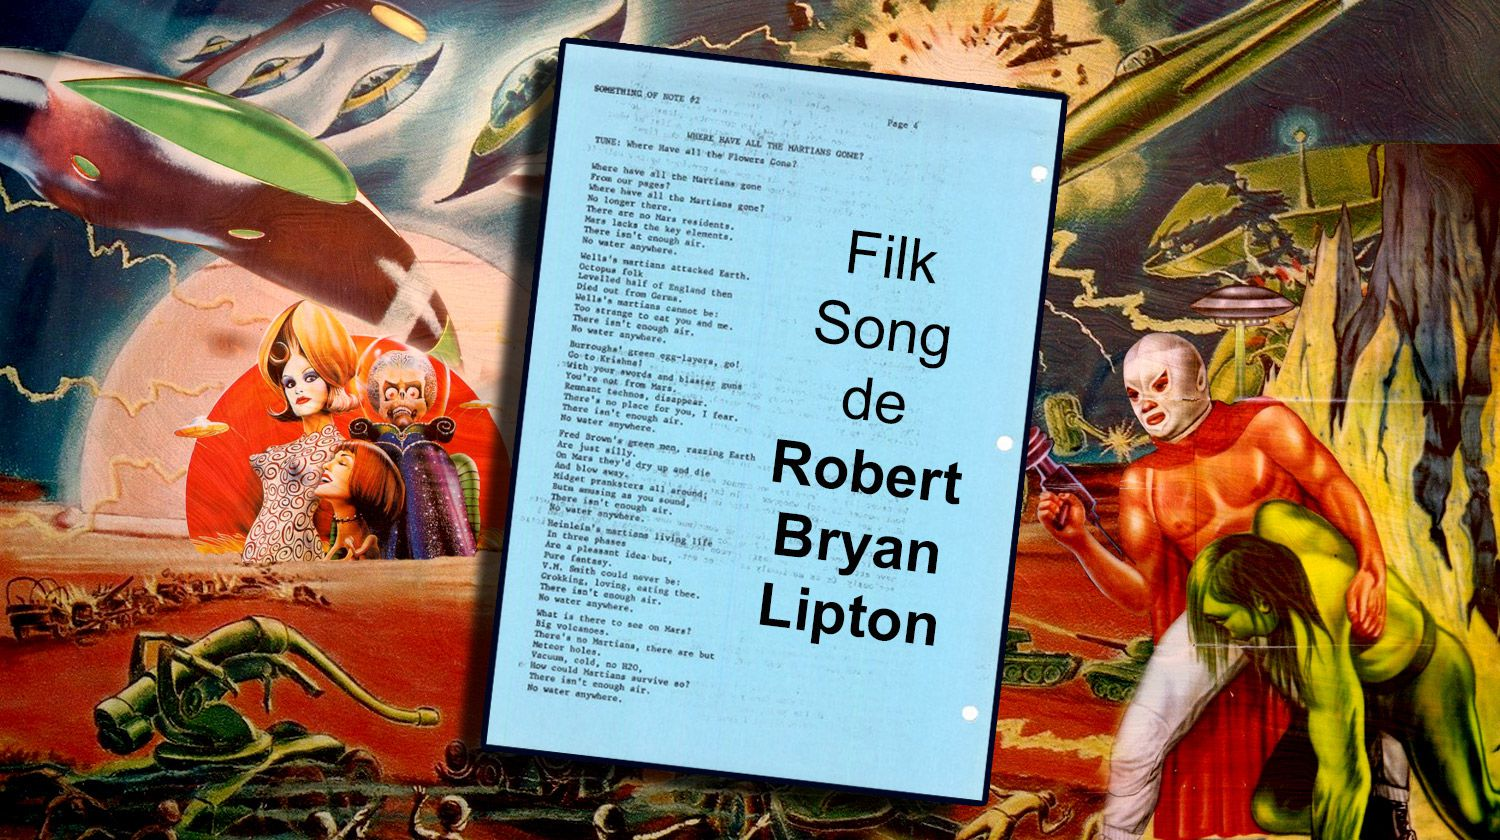 👽 ROBERT BRYAN LIPTON - WHERE HAVE ALL THE MARTIANS GONE ? (1979)